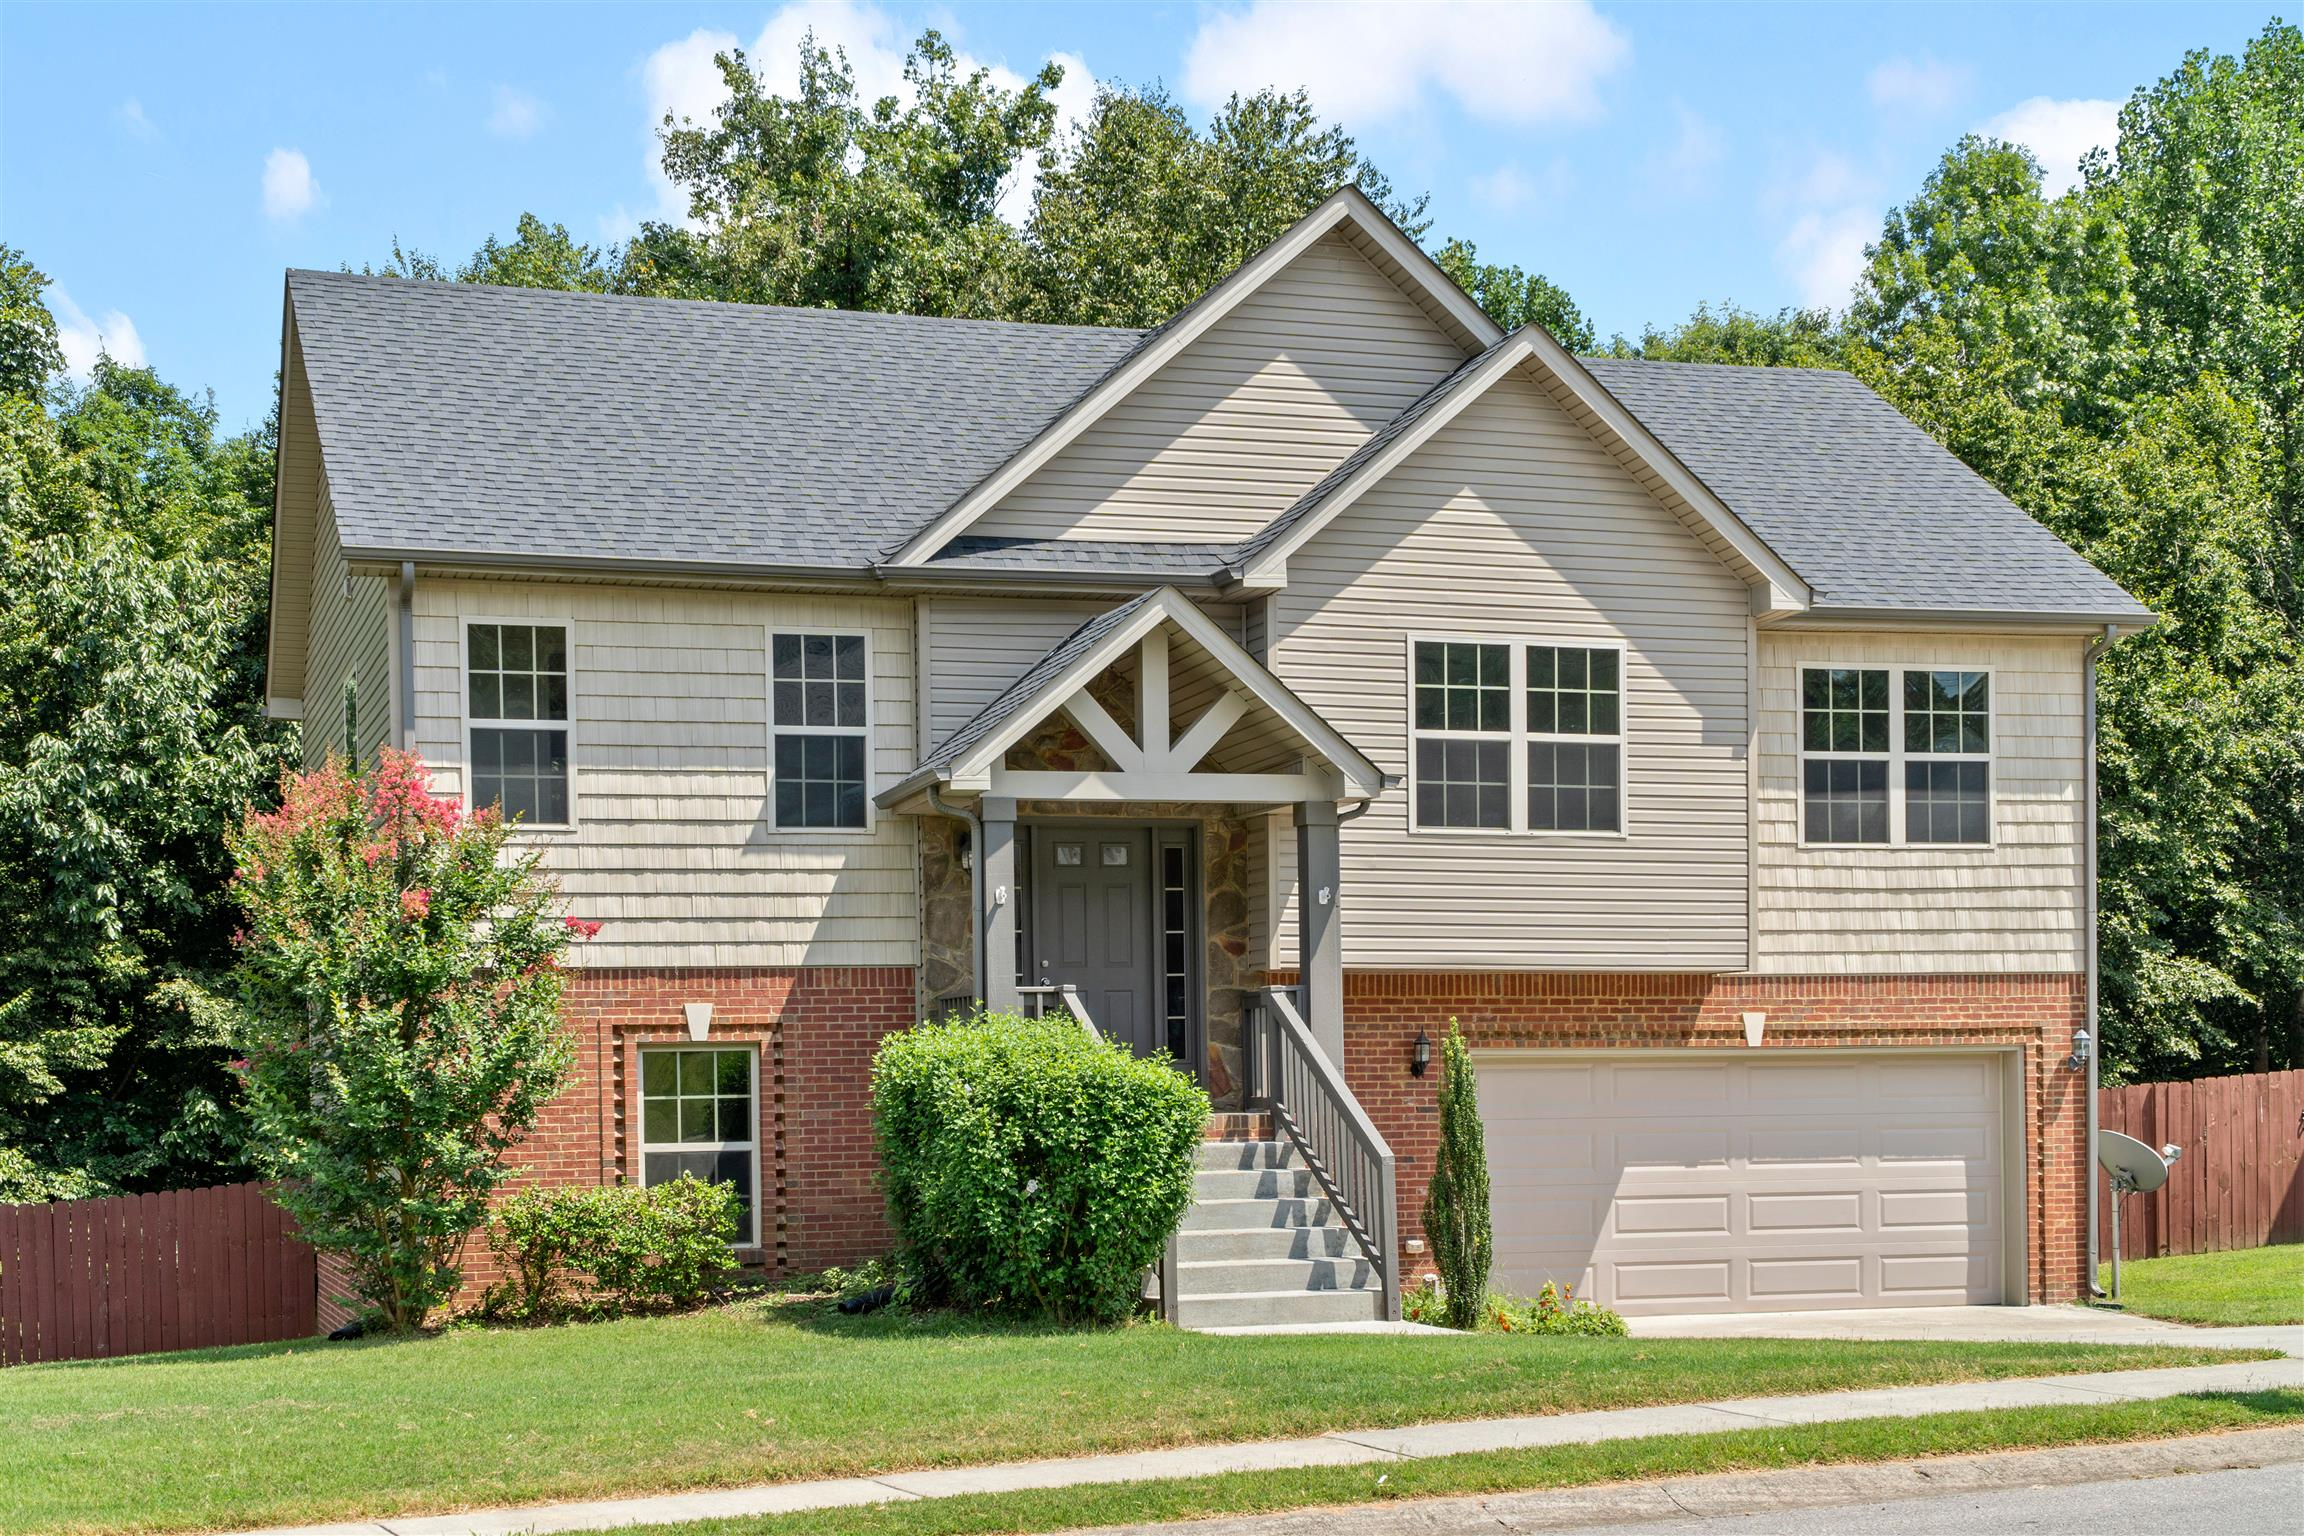 1833 Patricia Dr, Clarksville, TN 37043 - Clarksville, TN real estate listing